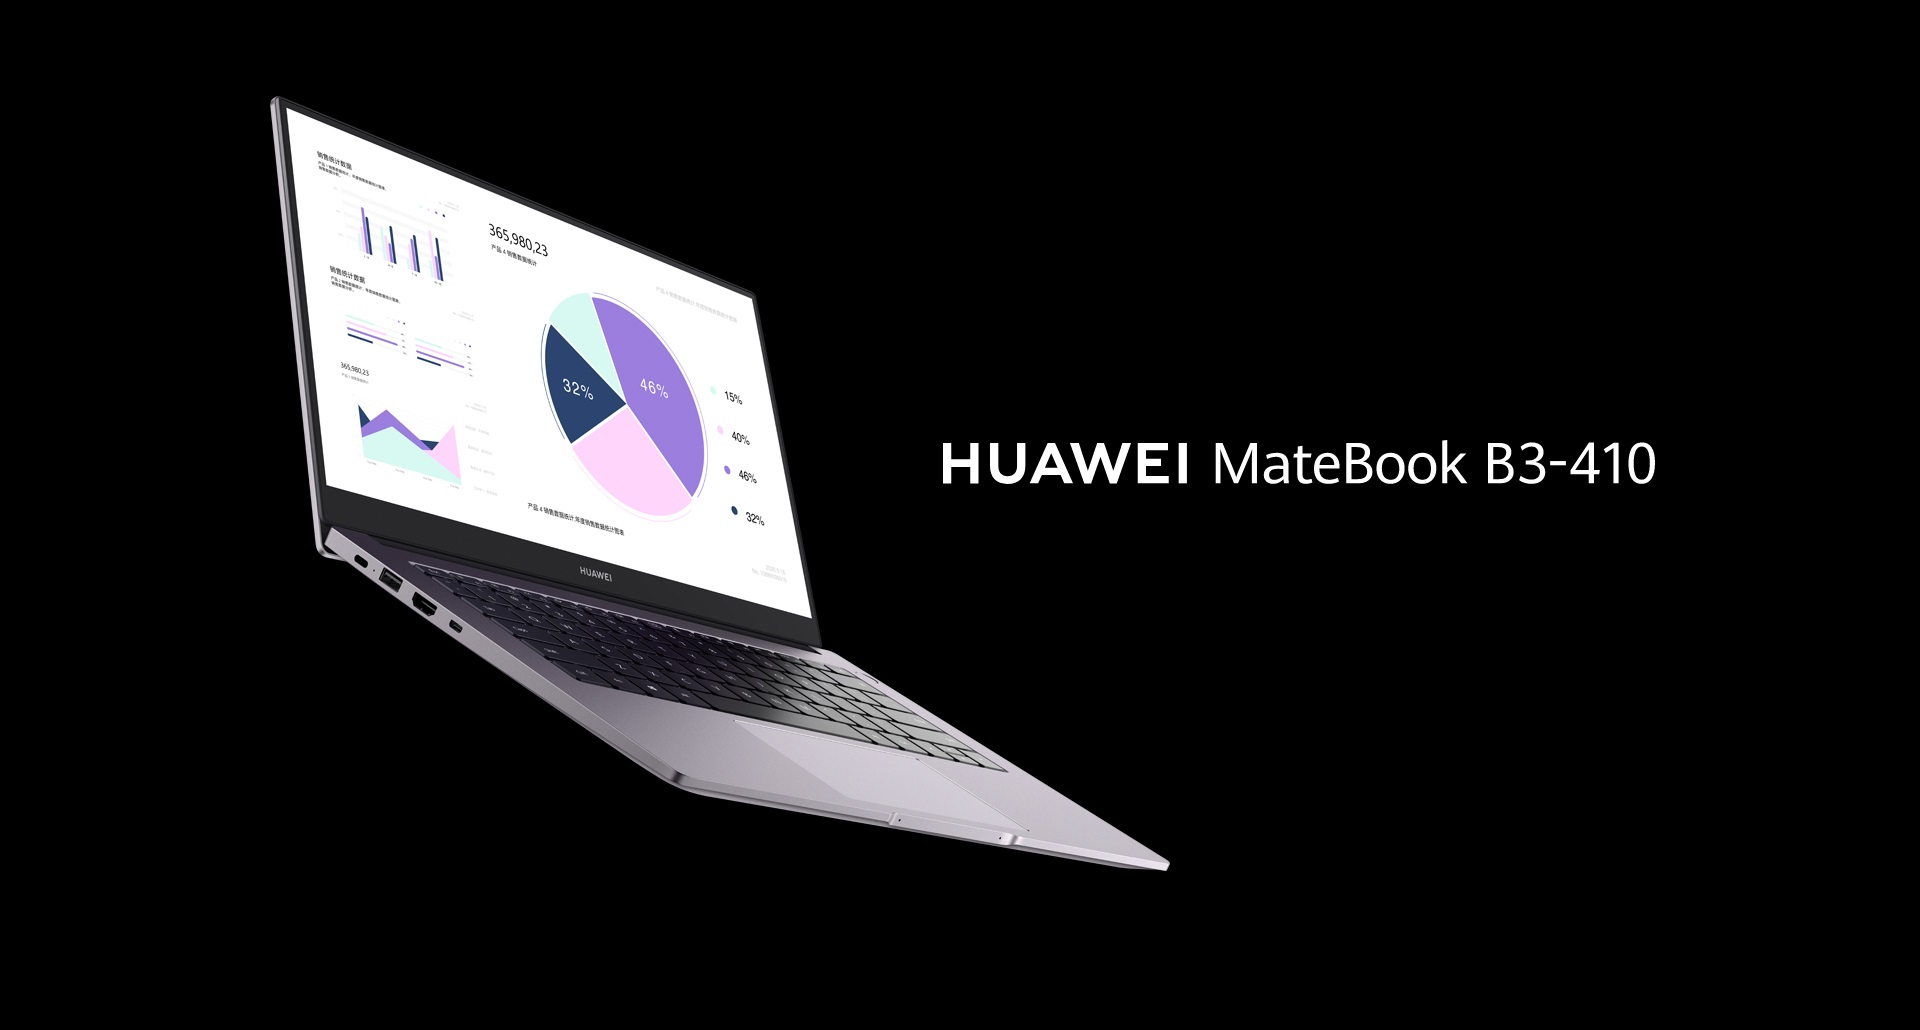 Huawei MateBook B3-410 laptop